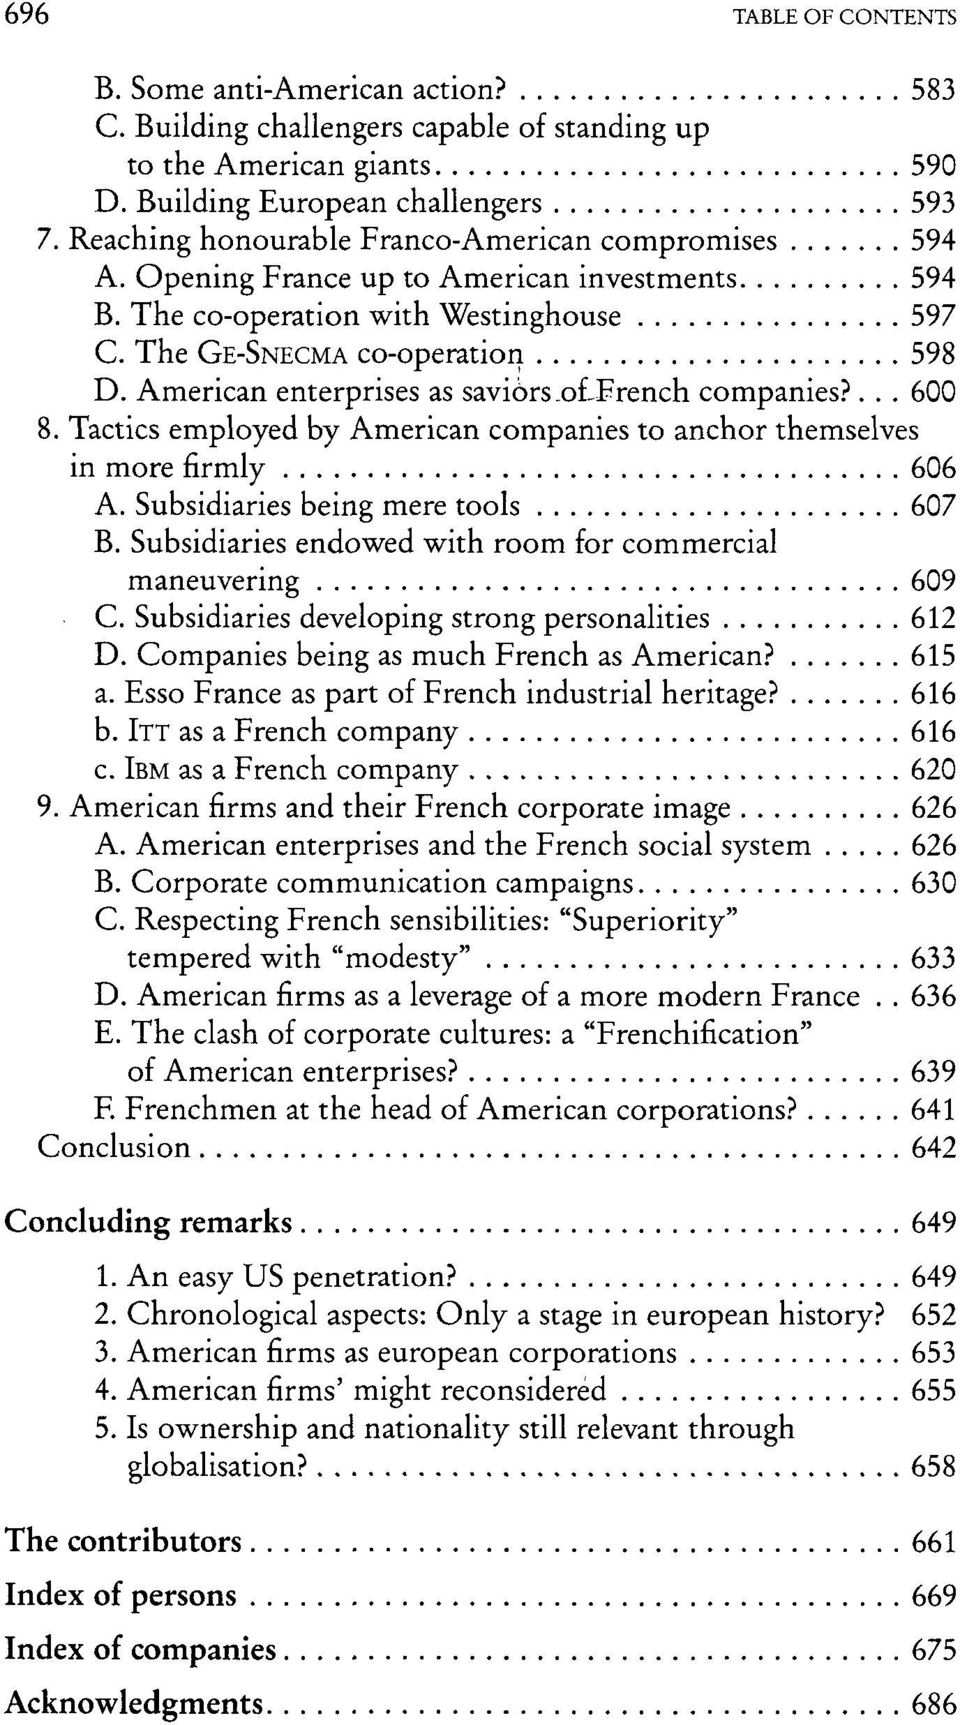 American enterprises as saviors.olfrench companies?... 600 8. Tactics employed by American companies to anchor themselves in more firmly 606 A. Subsidiaries being mere tools 607 B.